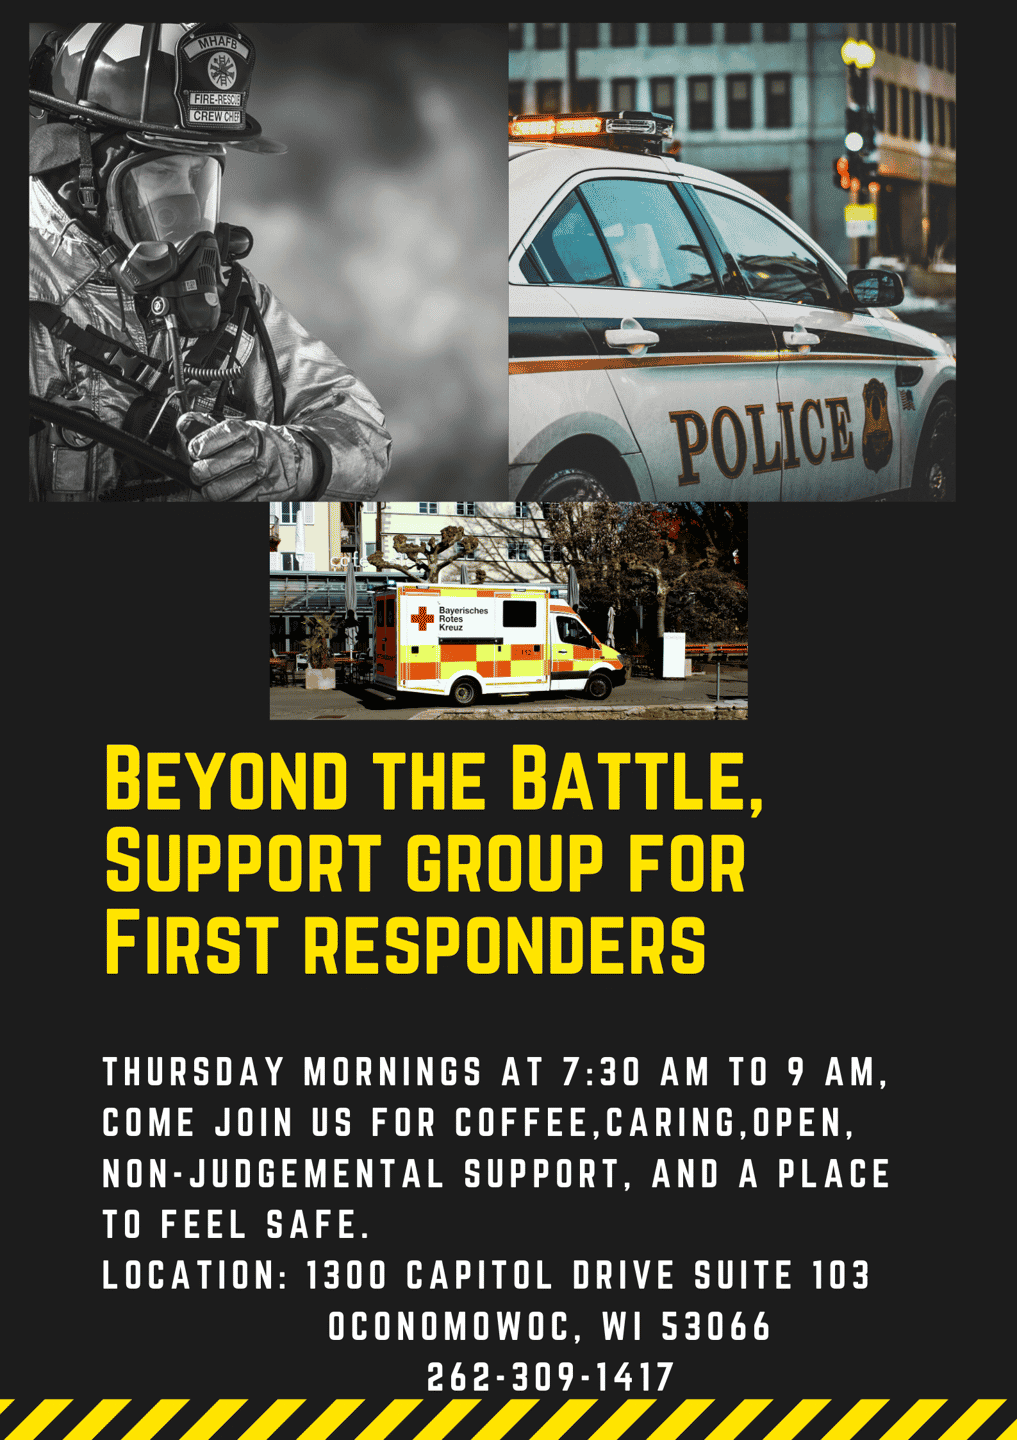 Support Group for First Responders